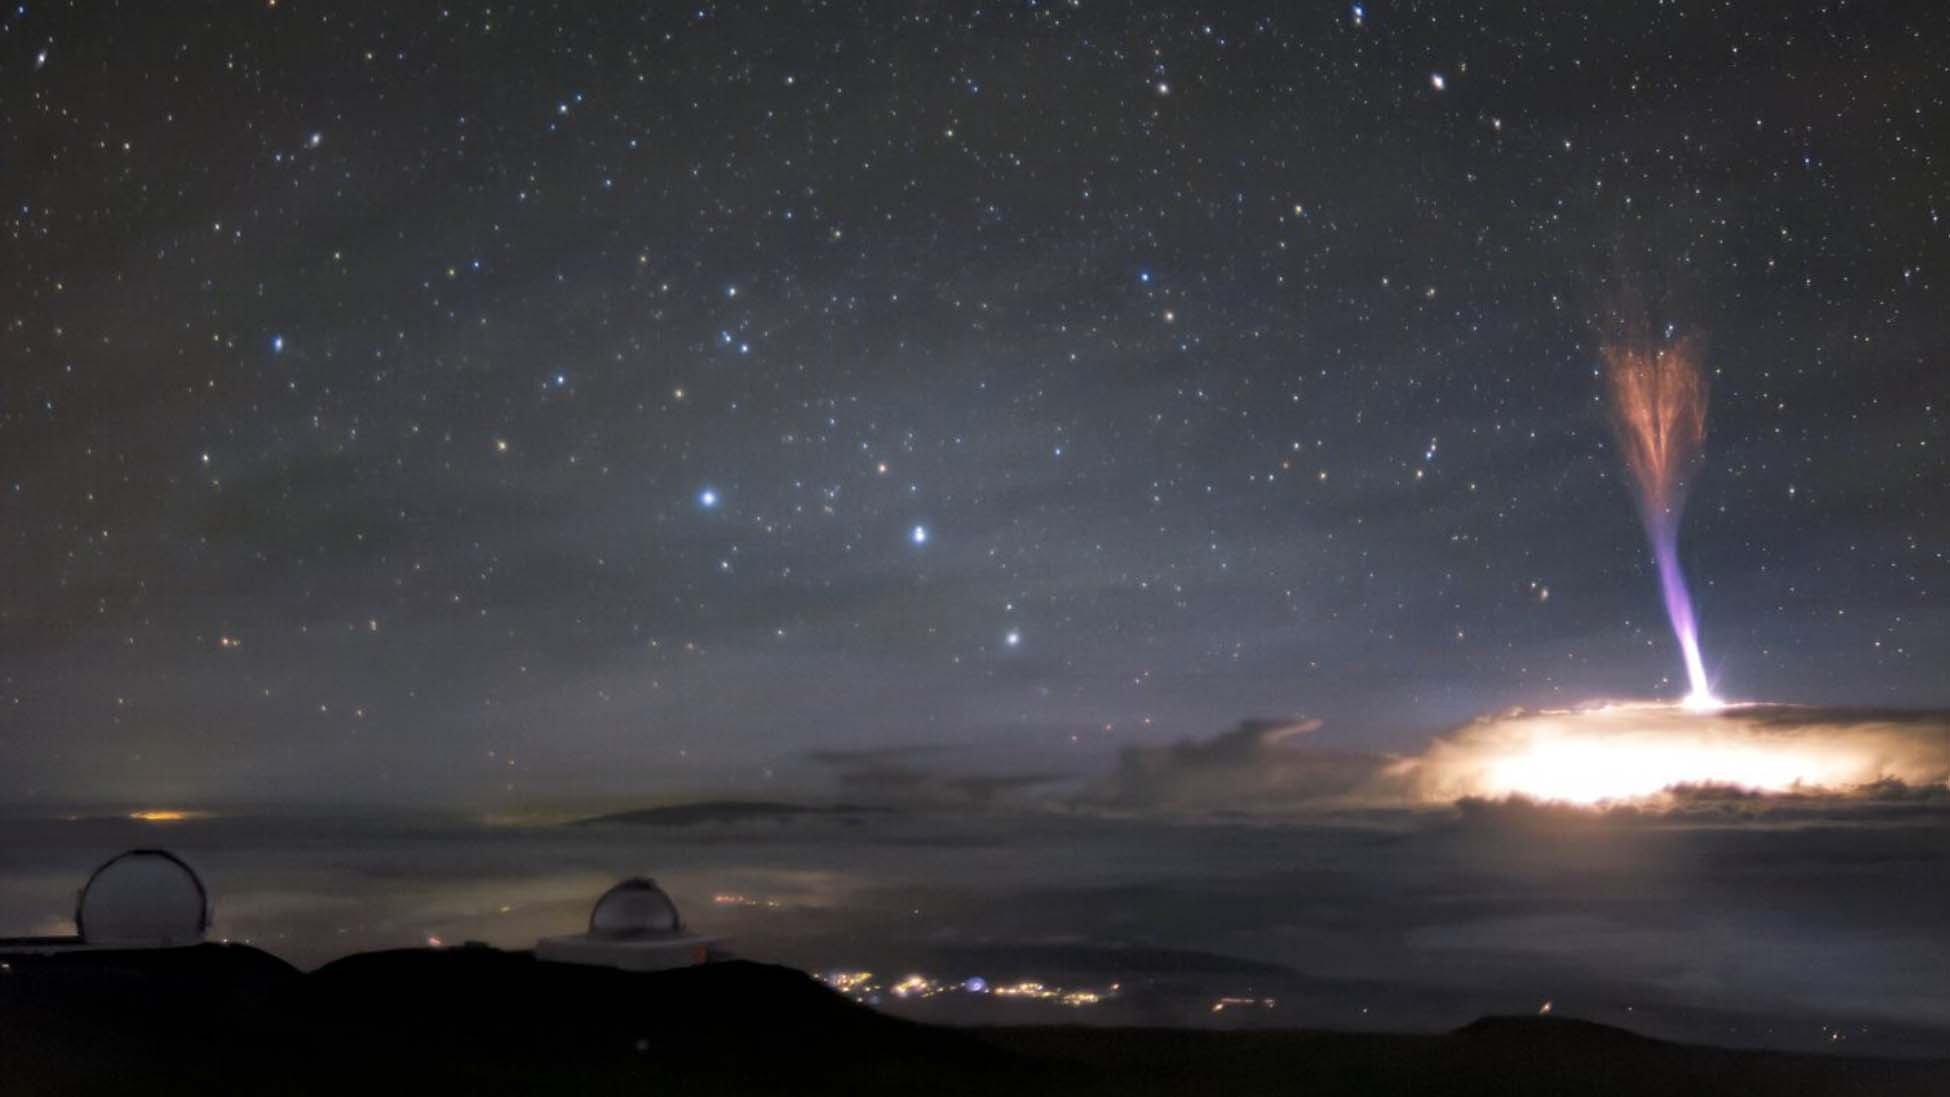 Incredible Image of Blue and Red Lightning Captured by Hawaii Telescope | The Weather Channel - Articles from The Weather Channel | weather.com